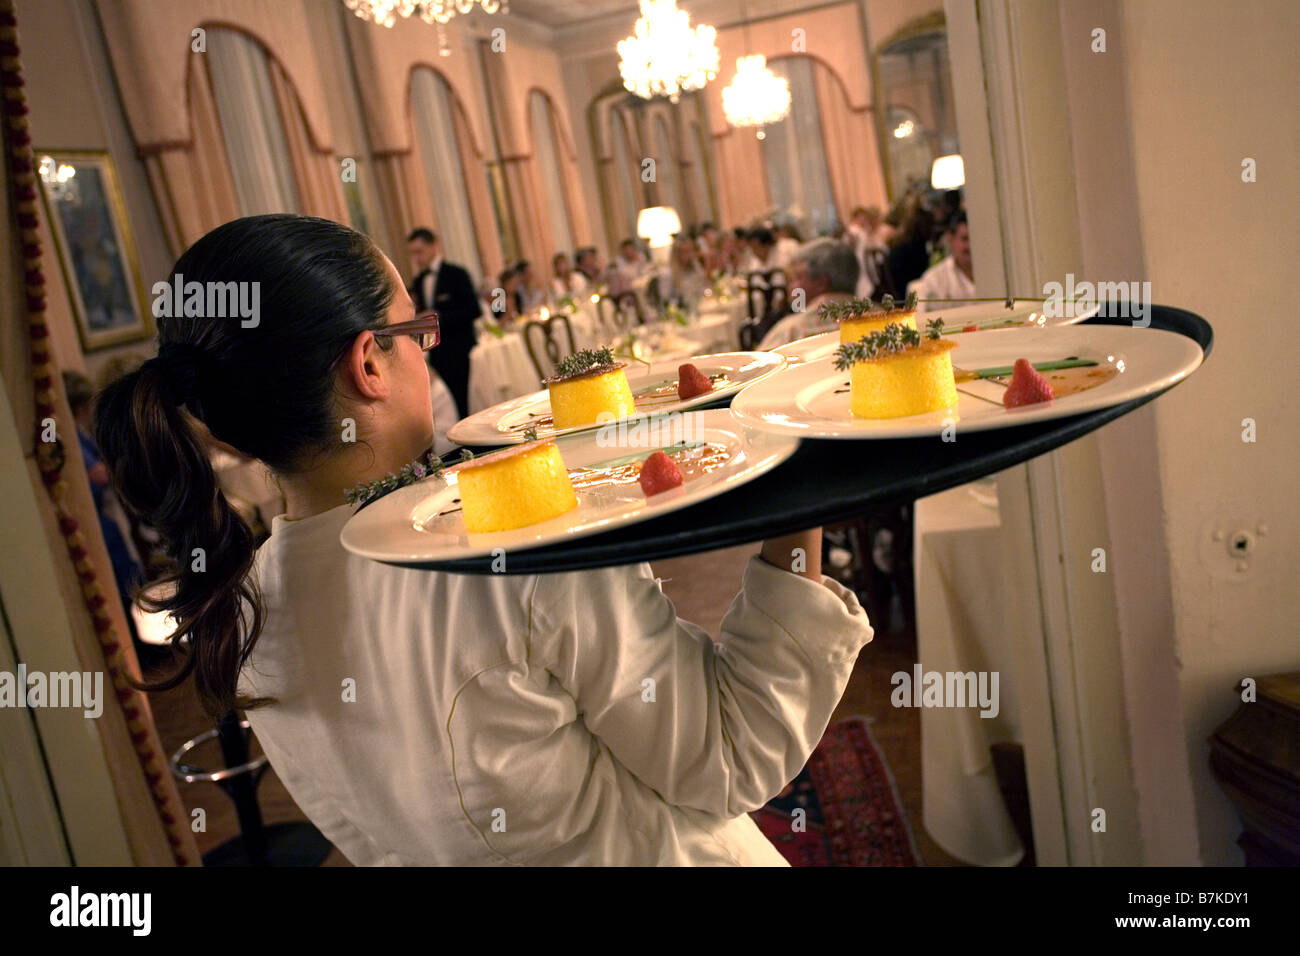 Waitress Carrying Heavy Tray